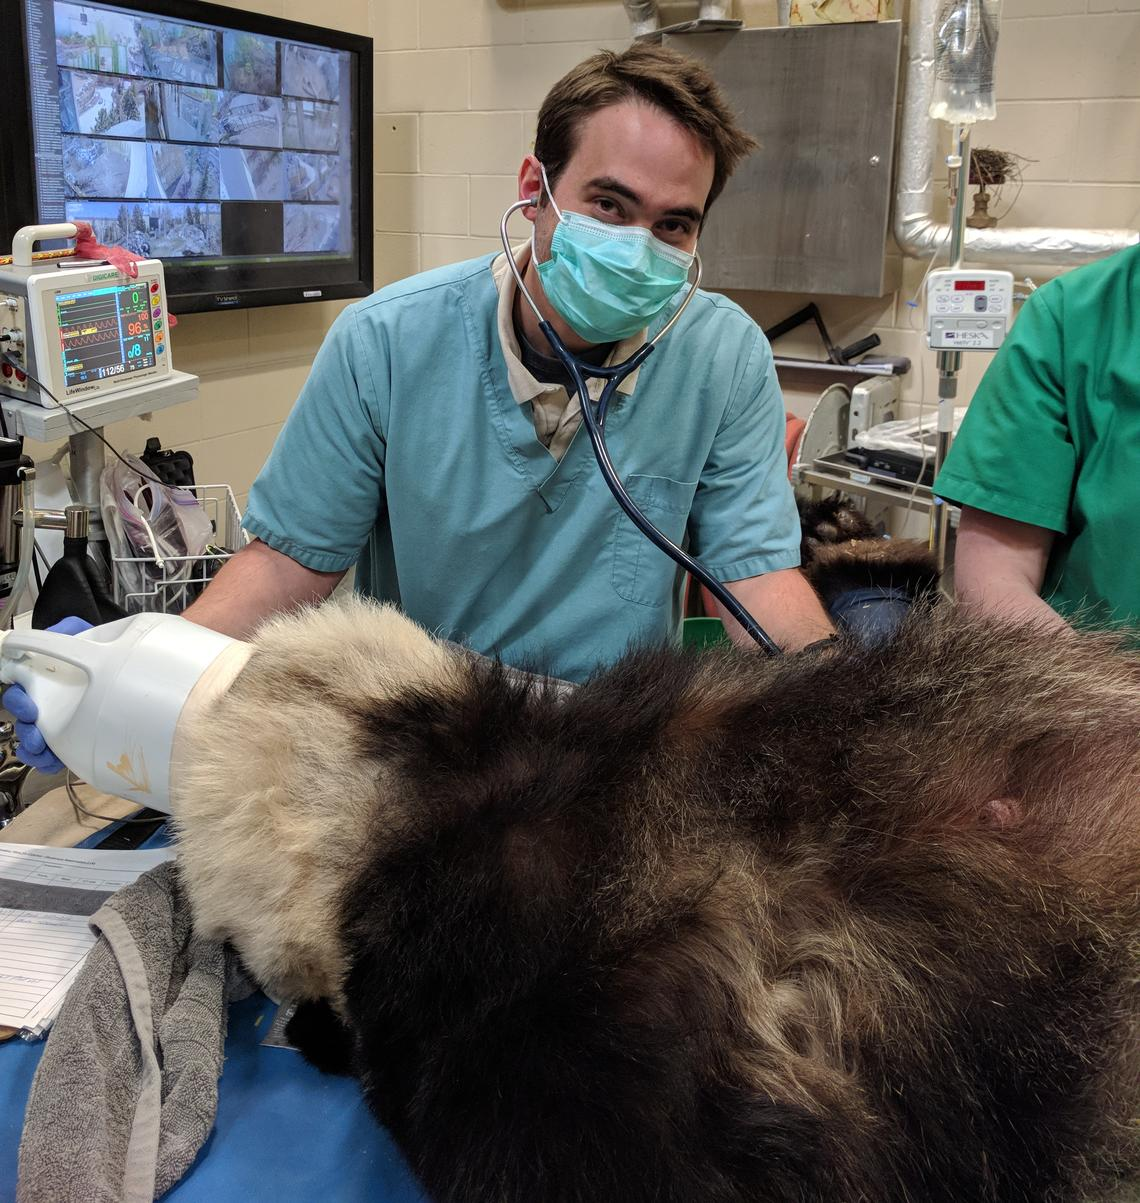 Jeff Lees, a fourth-year UCVM student on practicum rotation at the Calgary Zoo, had the opportunity to help monitor anesthesia on the panda and do a physical examination of her.